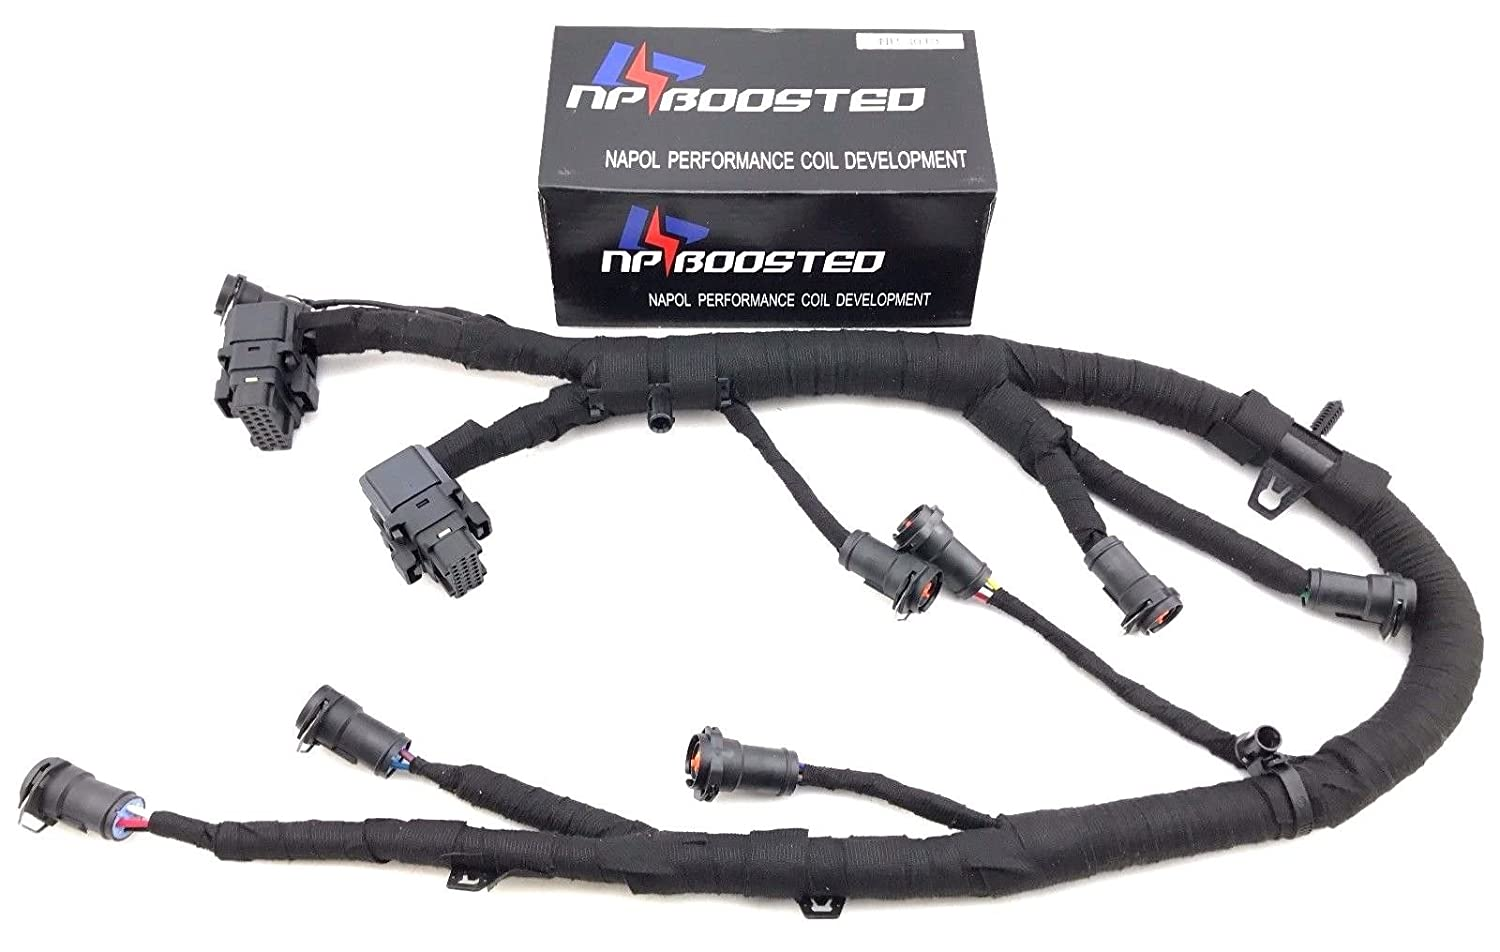 2003-2007 Ford 6.0L Powerstroke Diesel FICM Fuel Injector Jumper Wiring Harness